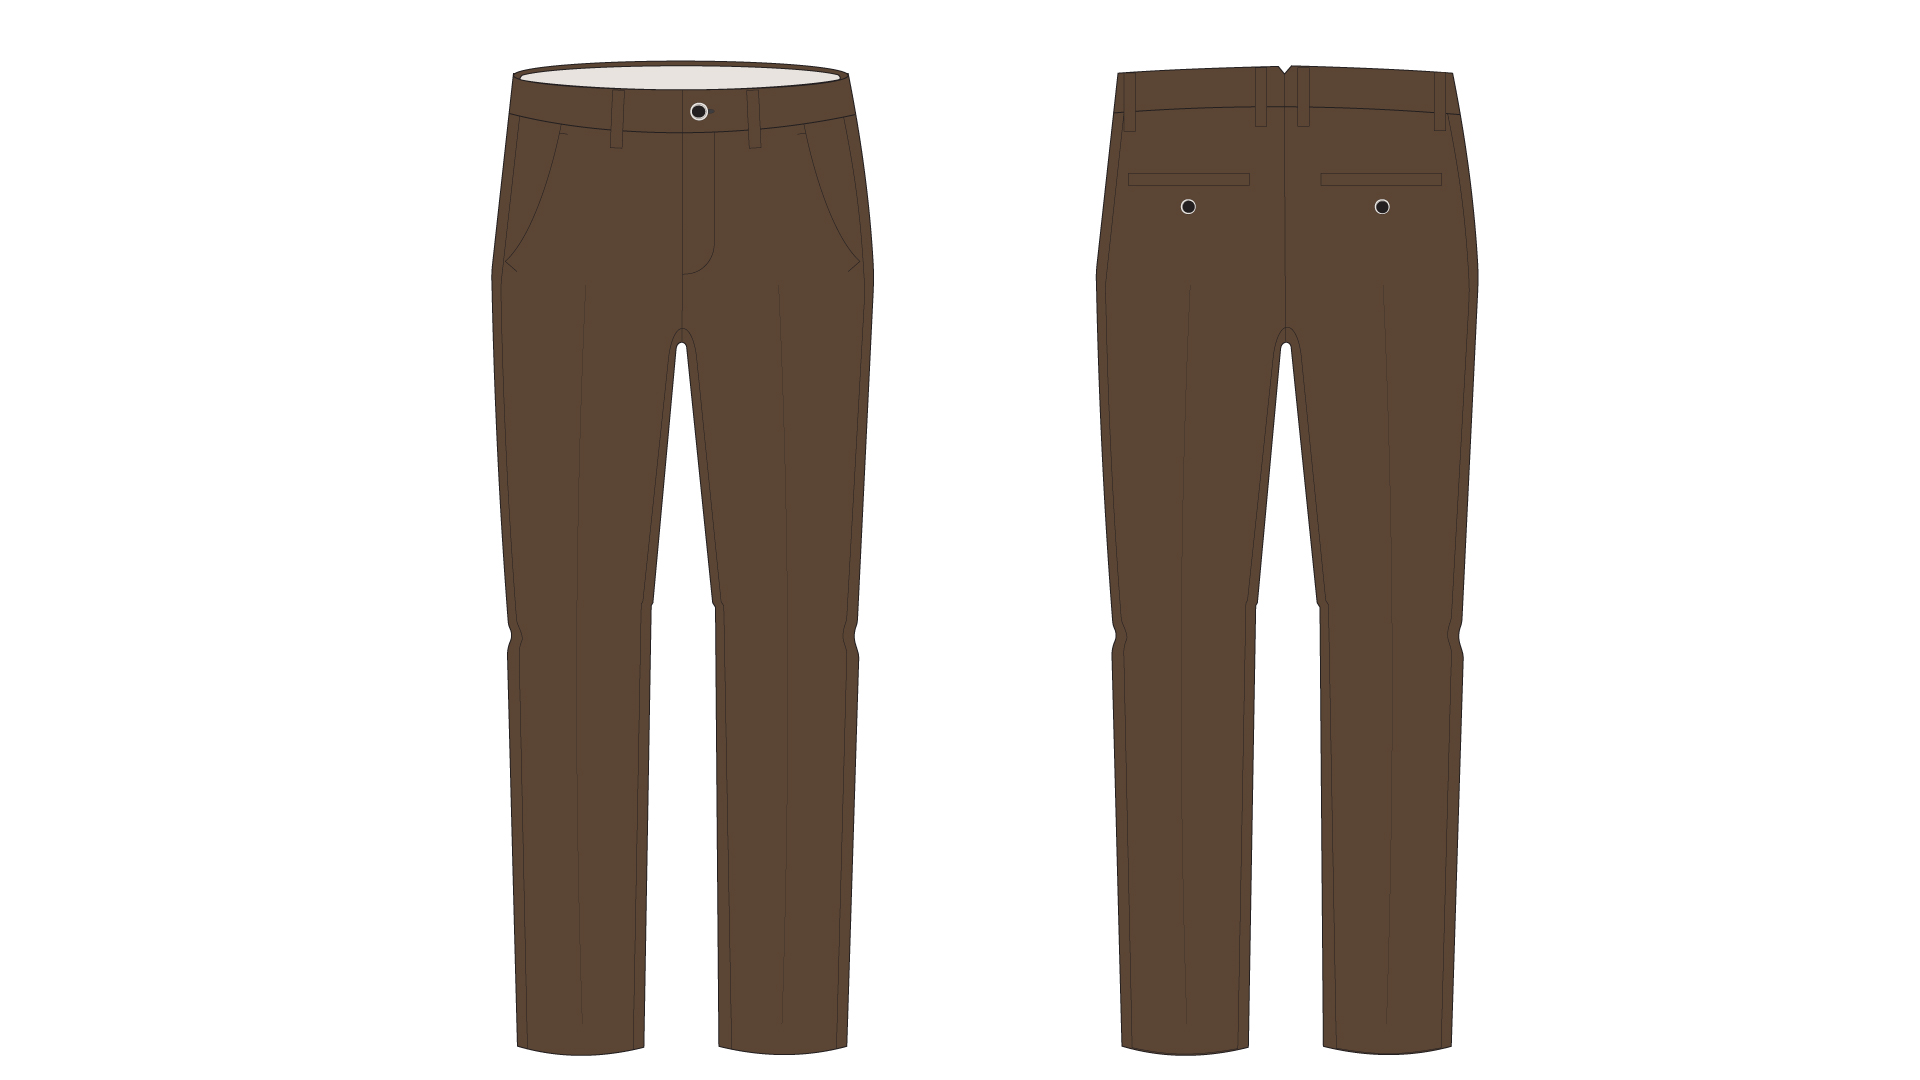 Graphic of the CCC uniform pants, which are brown .